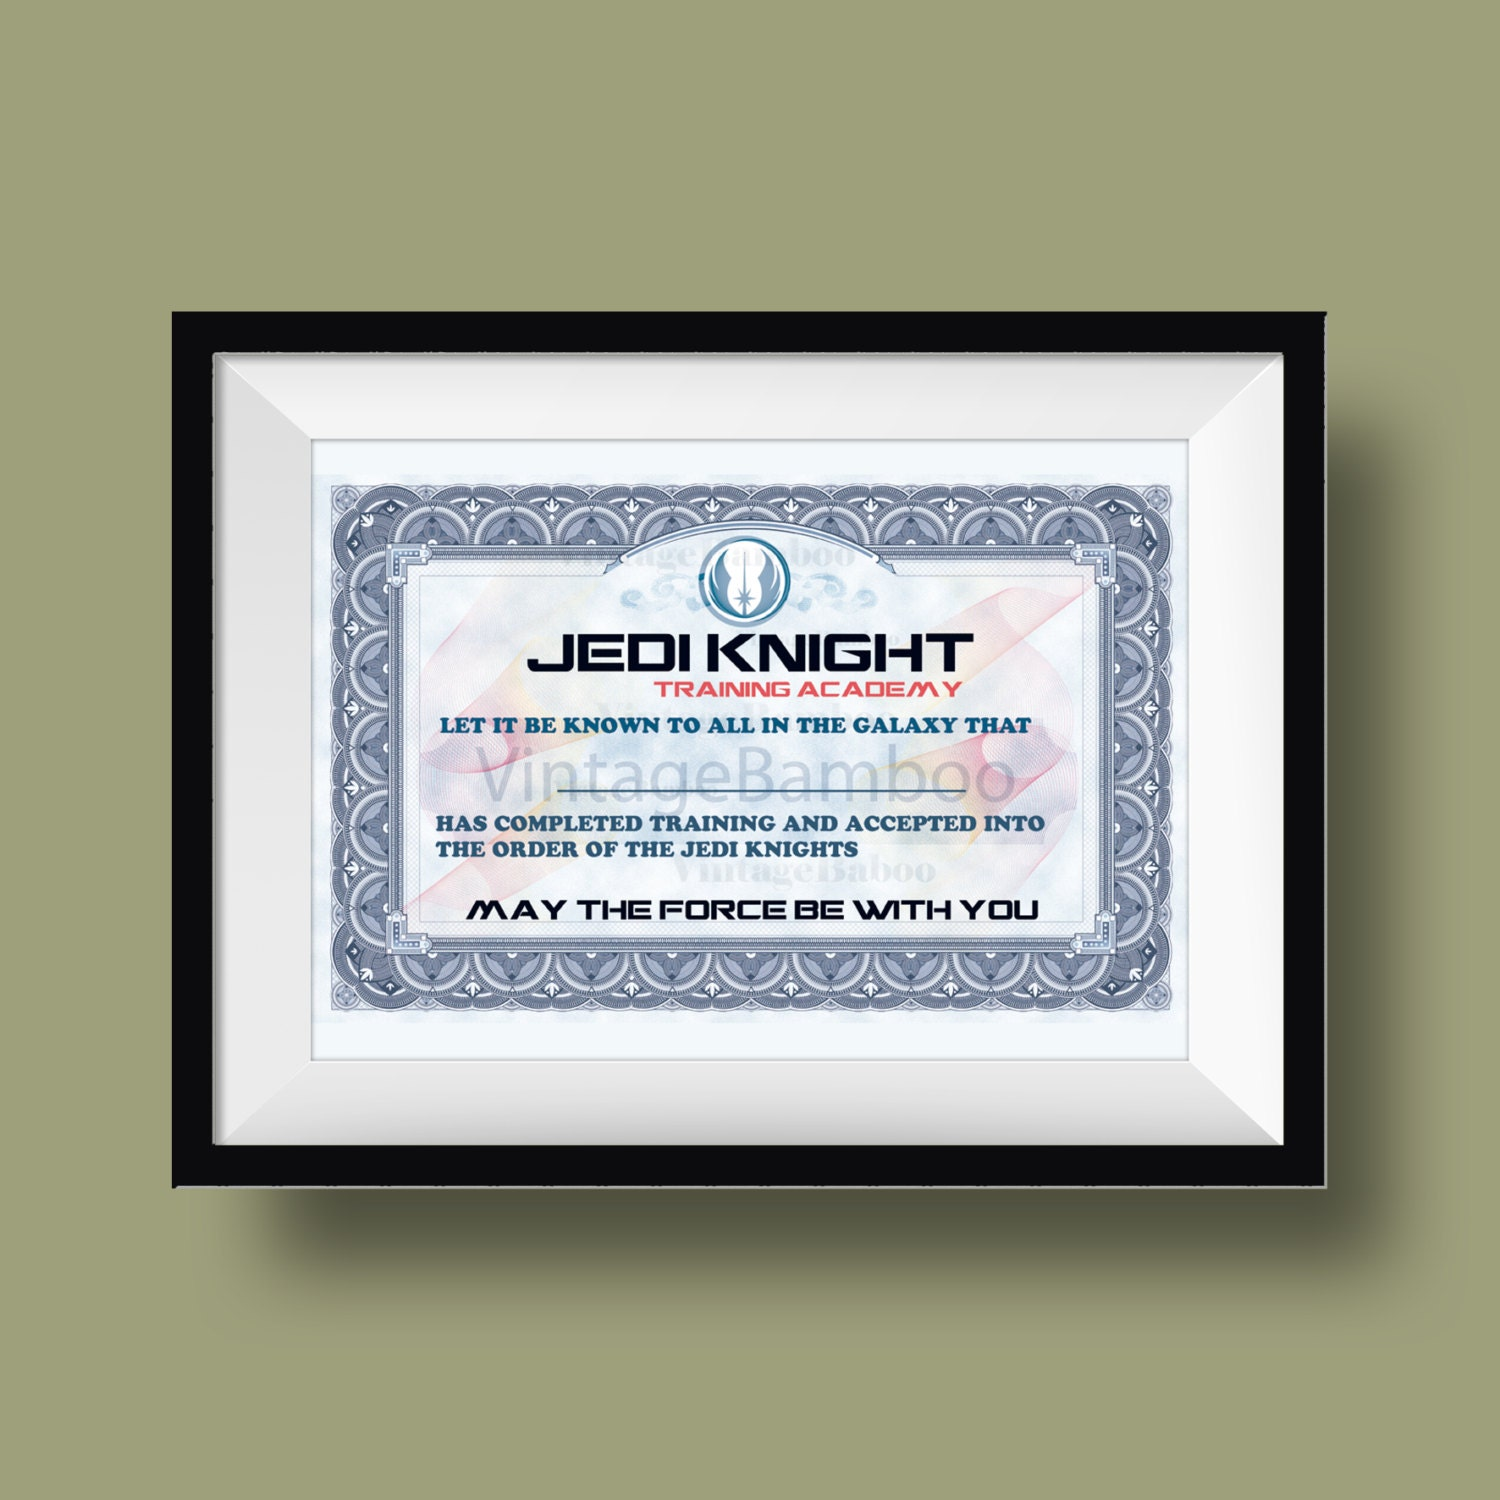 Jedi knight academy certificate images yadclub Image collections